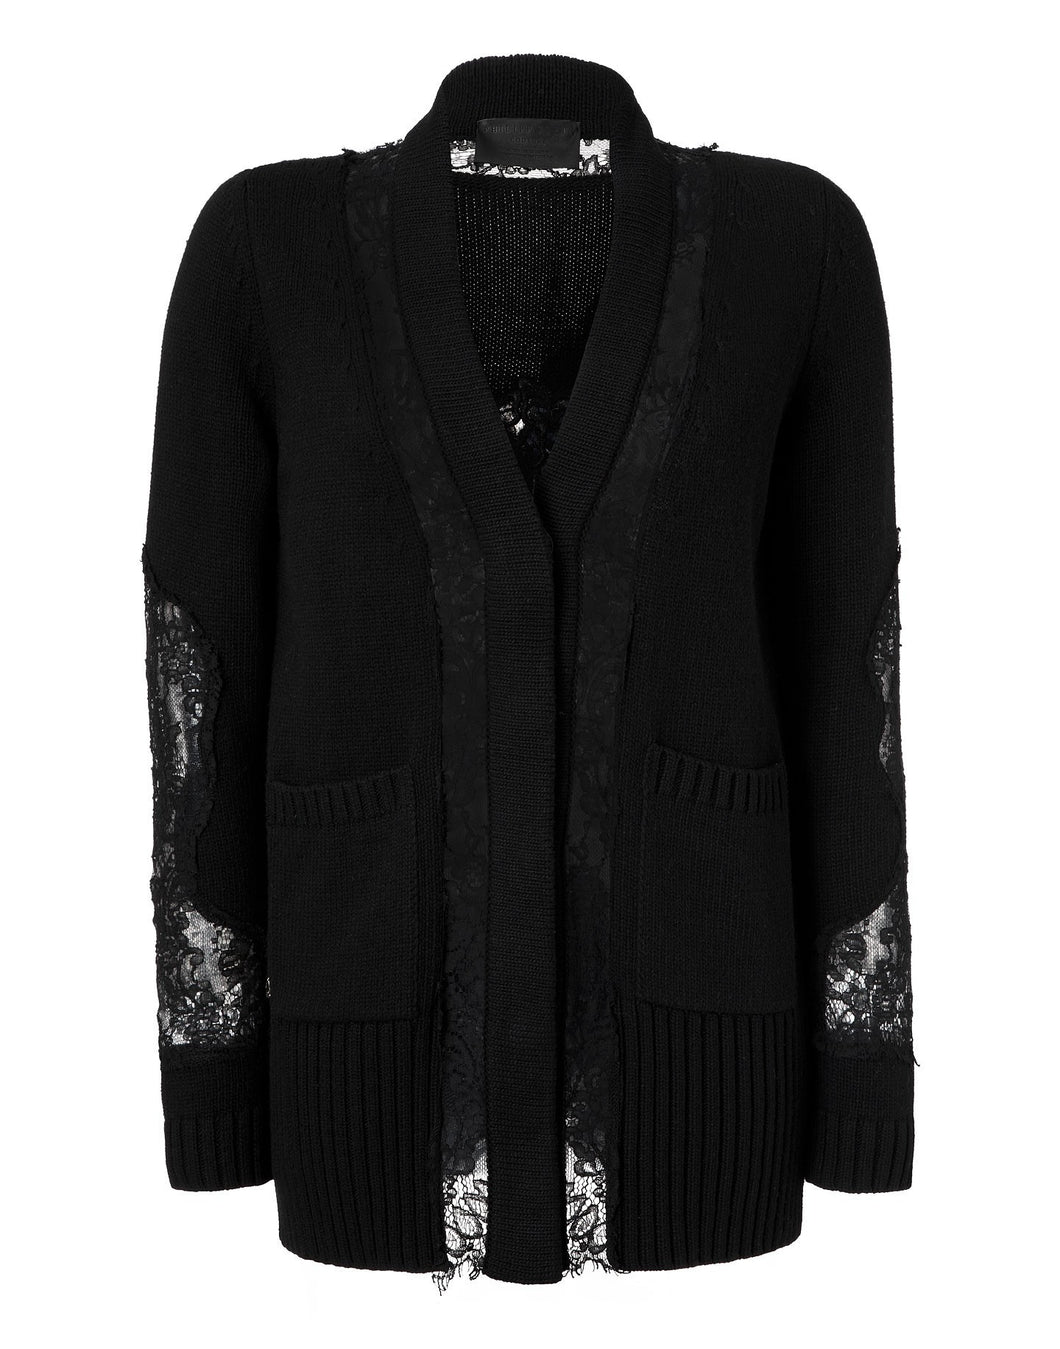 Philipp Plein Fabulous Cardigan Black